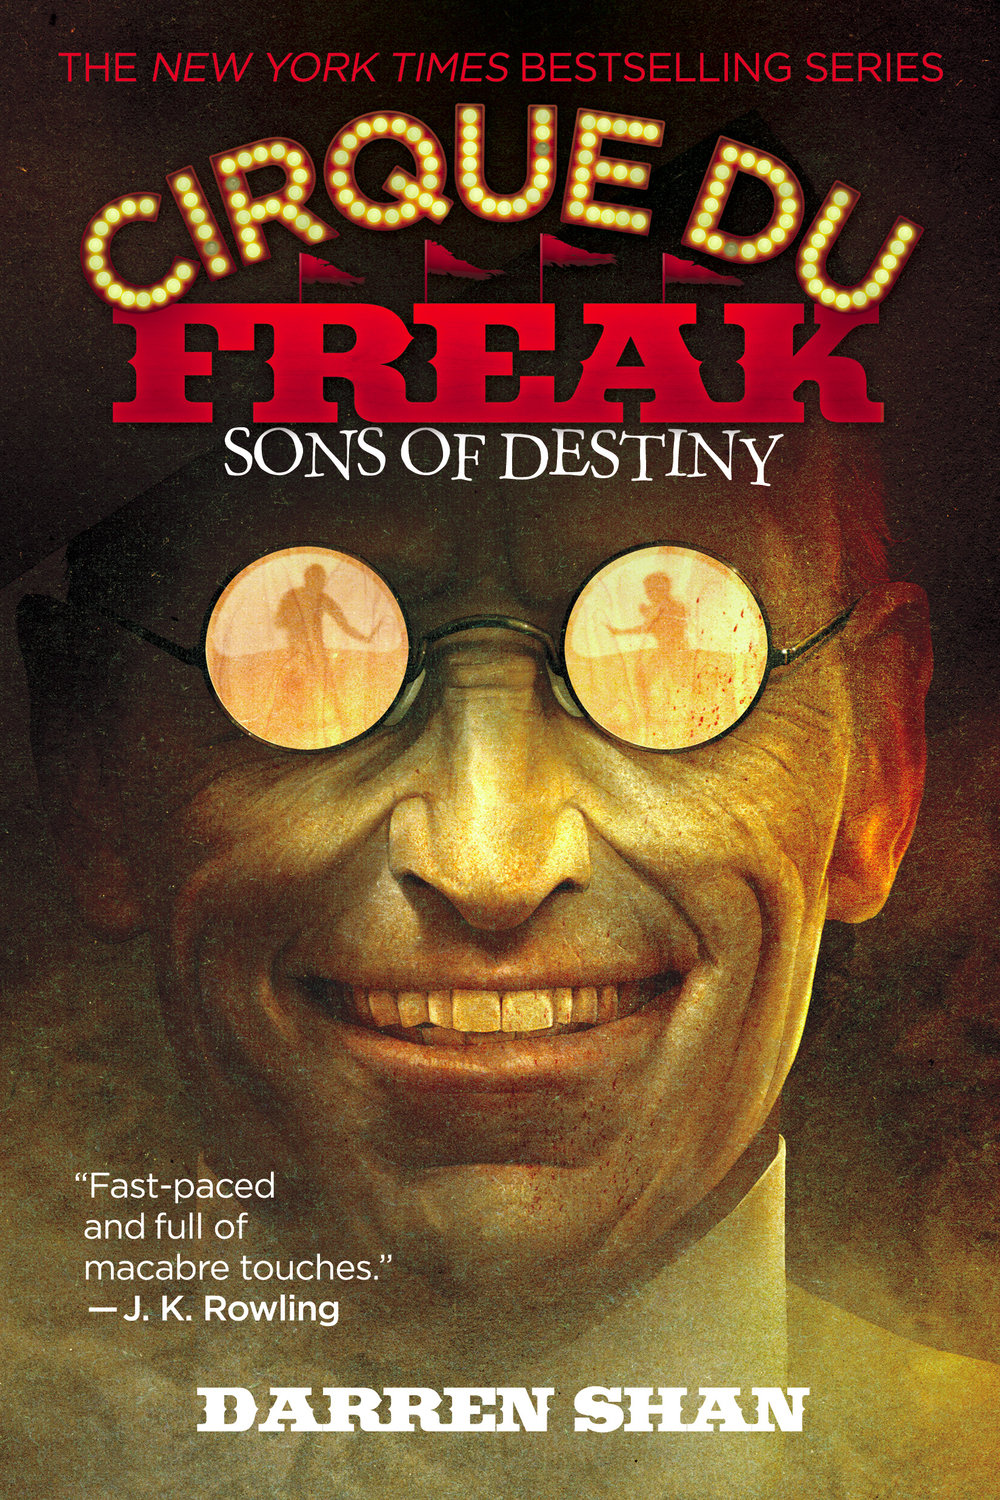 Cirque Du Freak: Sons of Destiny by Darren Shan Designed by Ben Mautner for Little, Brown Illustrated by Sam Weber